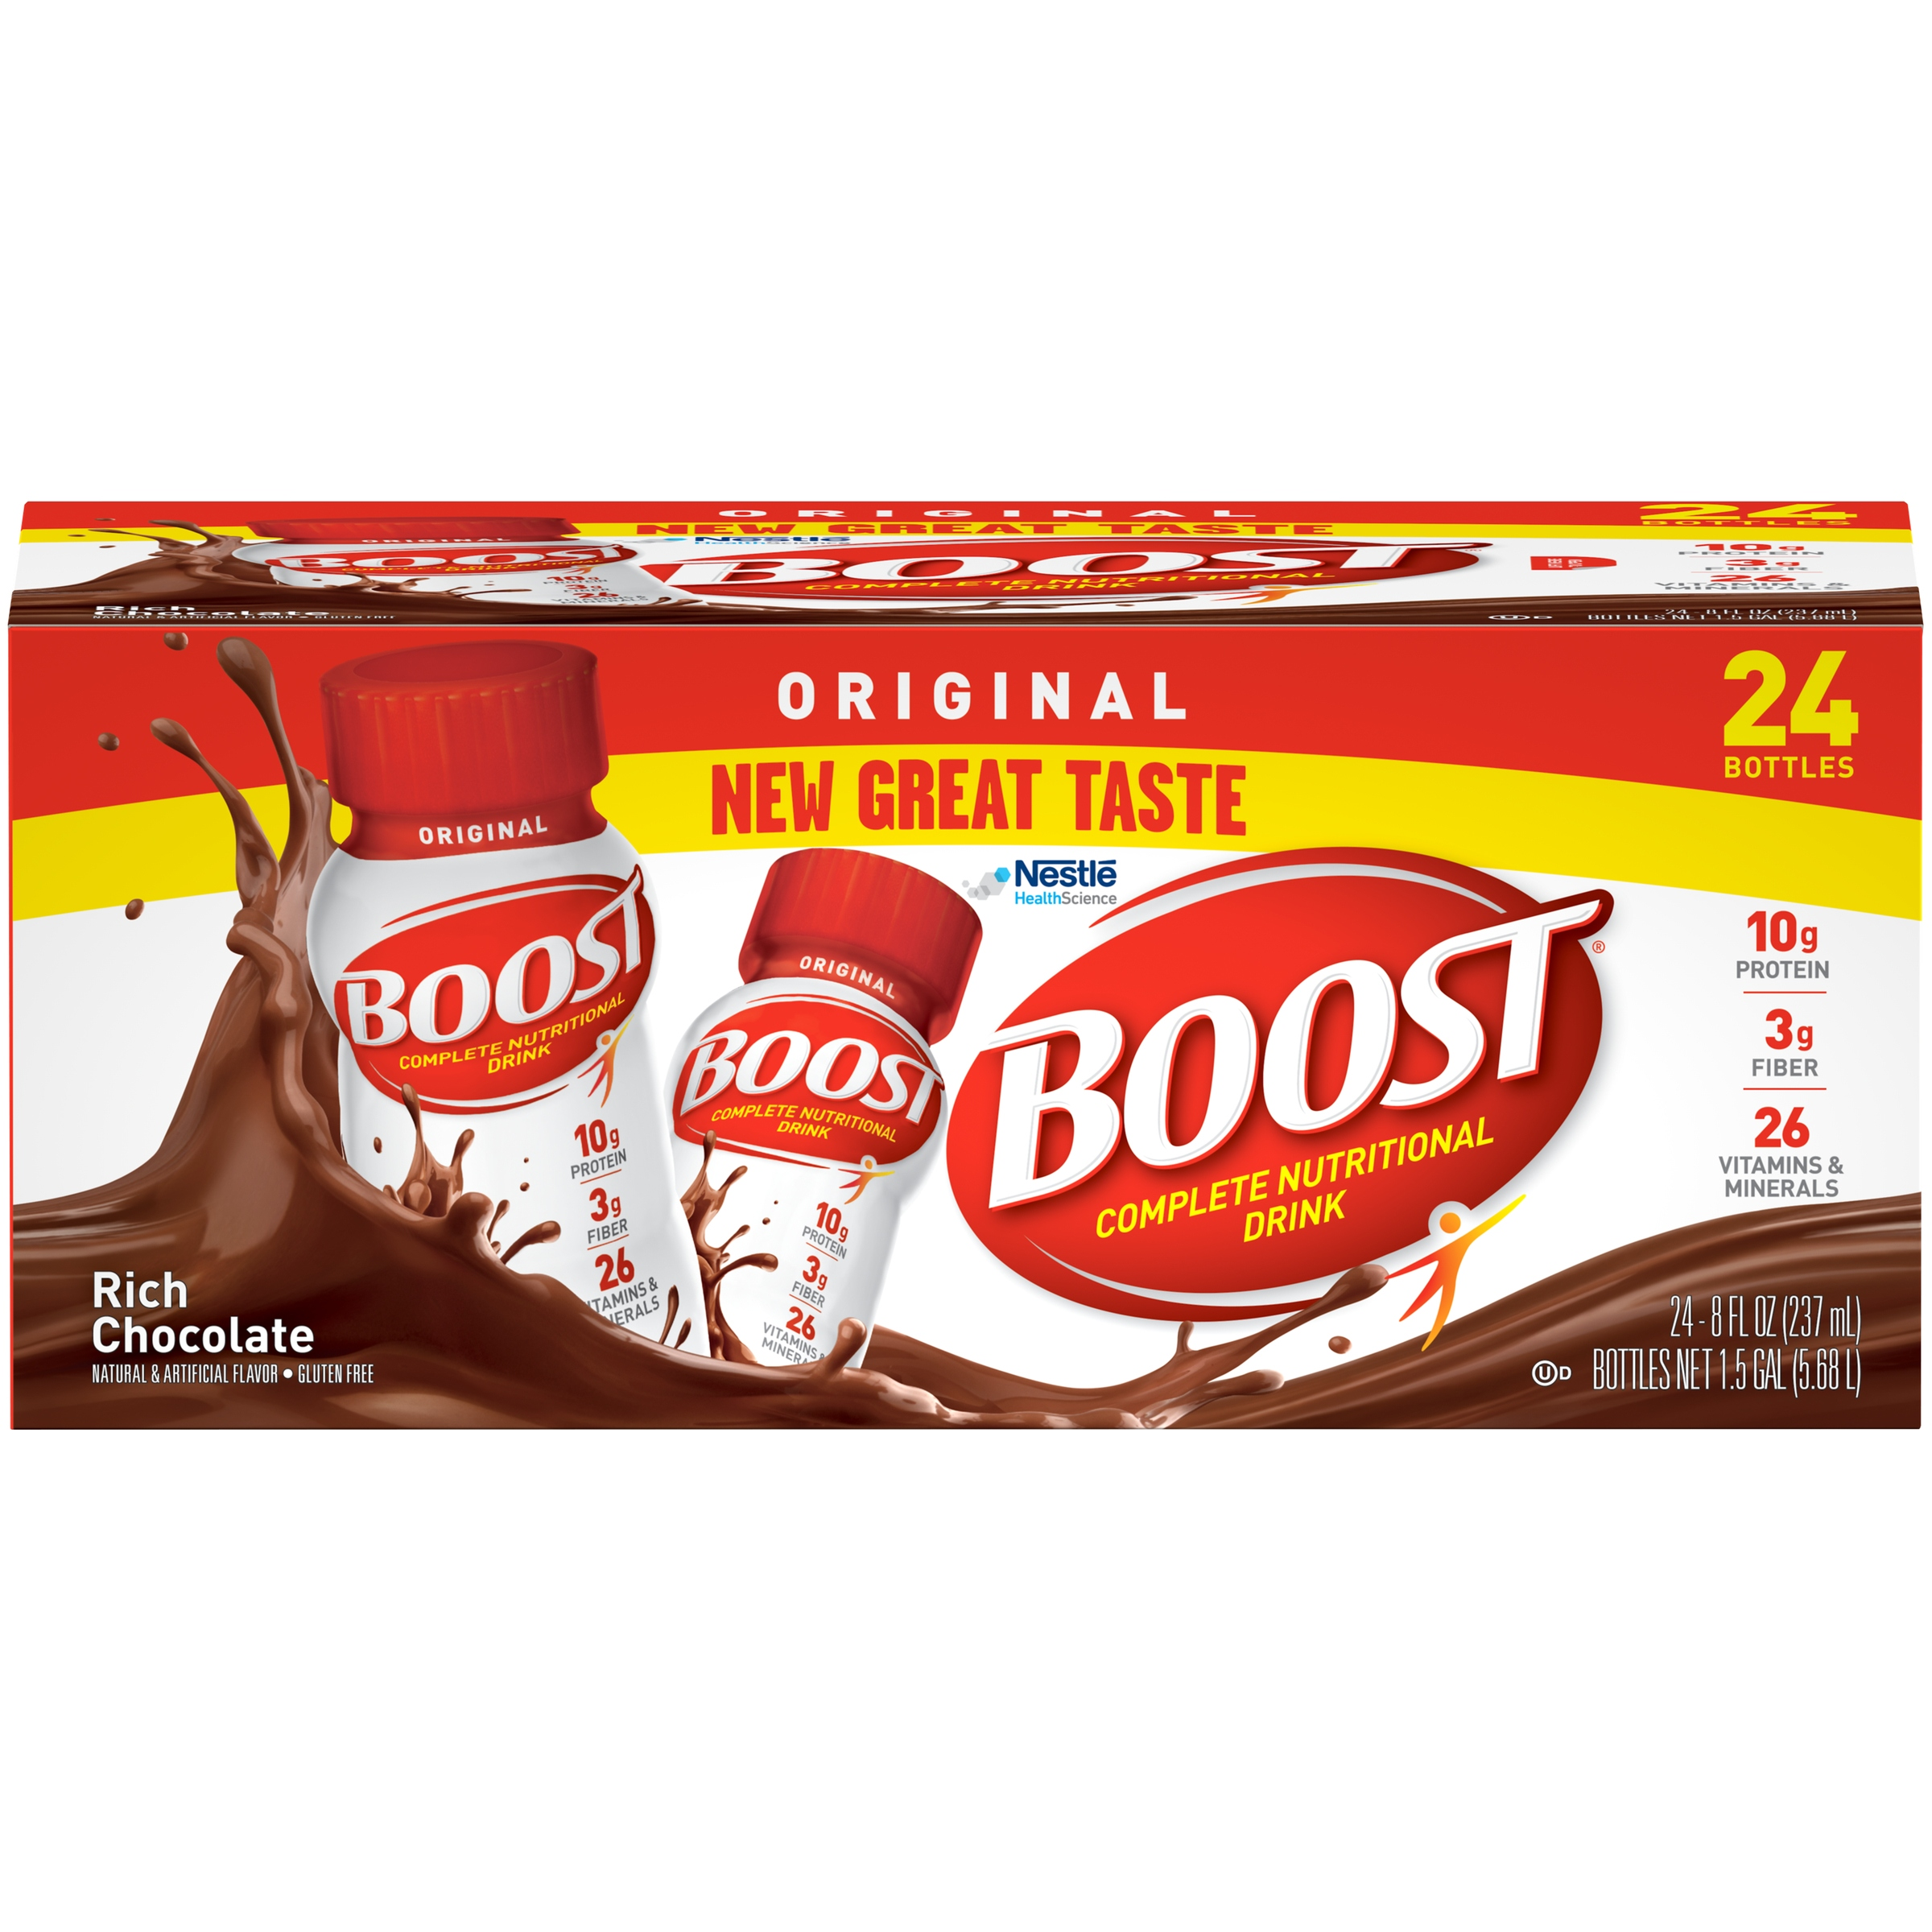 BOOST ORIGINAL Rich Chocolate 24-8 fl. oz. Bottles